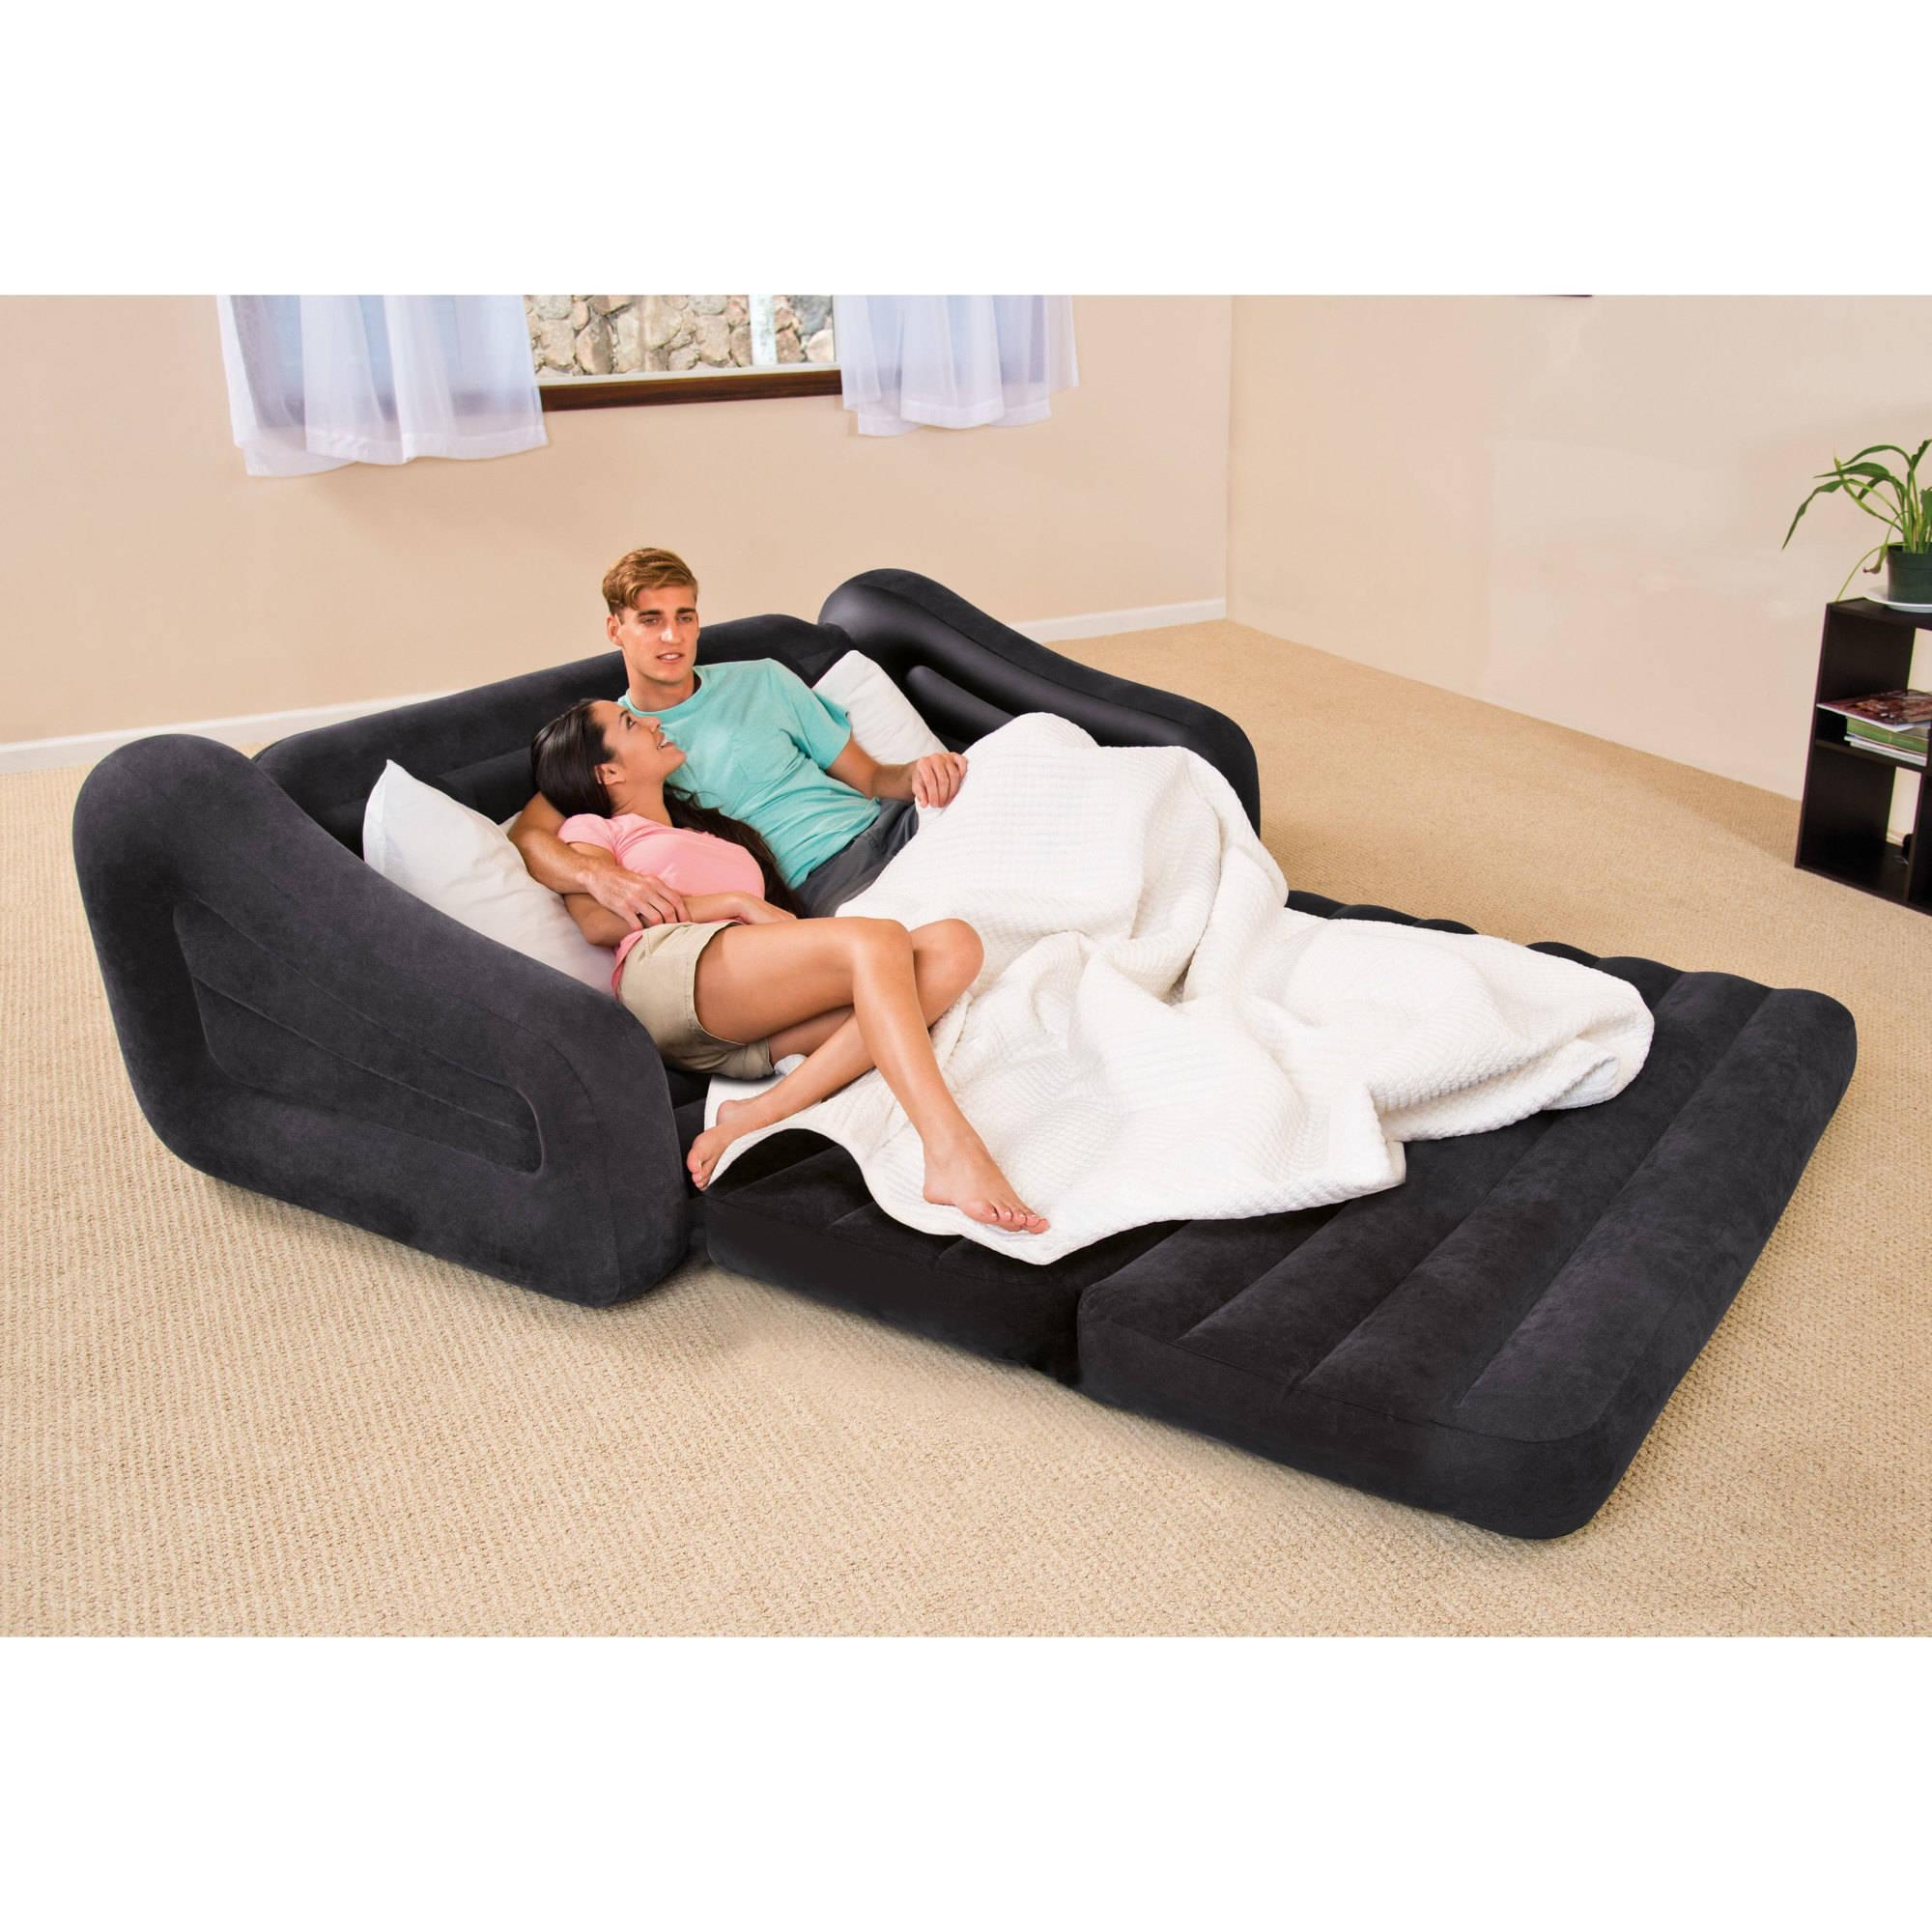 Intex Queen Inflatable Pull Out Sofa Bed – Walmart Regarding Intex Queen Sleeper Sofas (View 5 of 20)